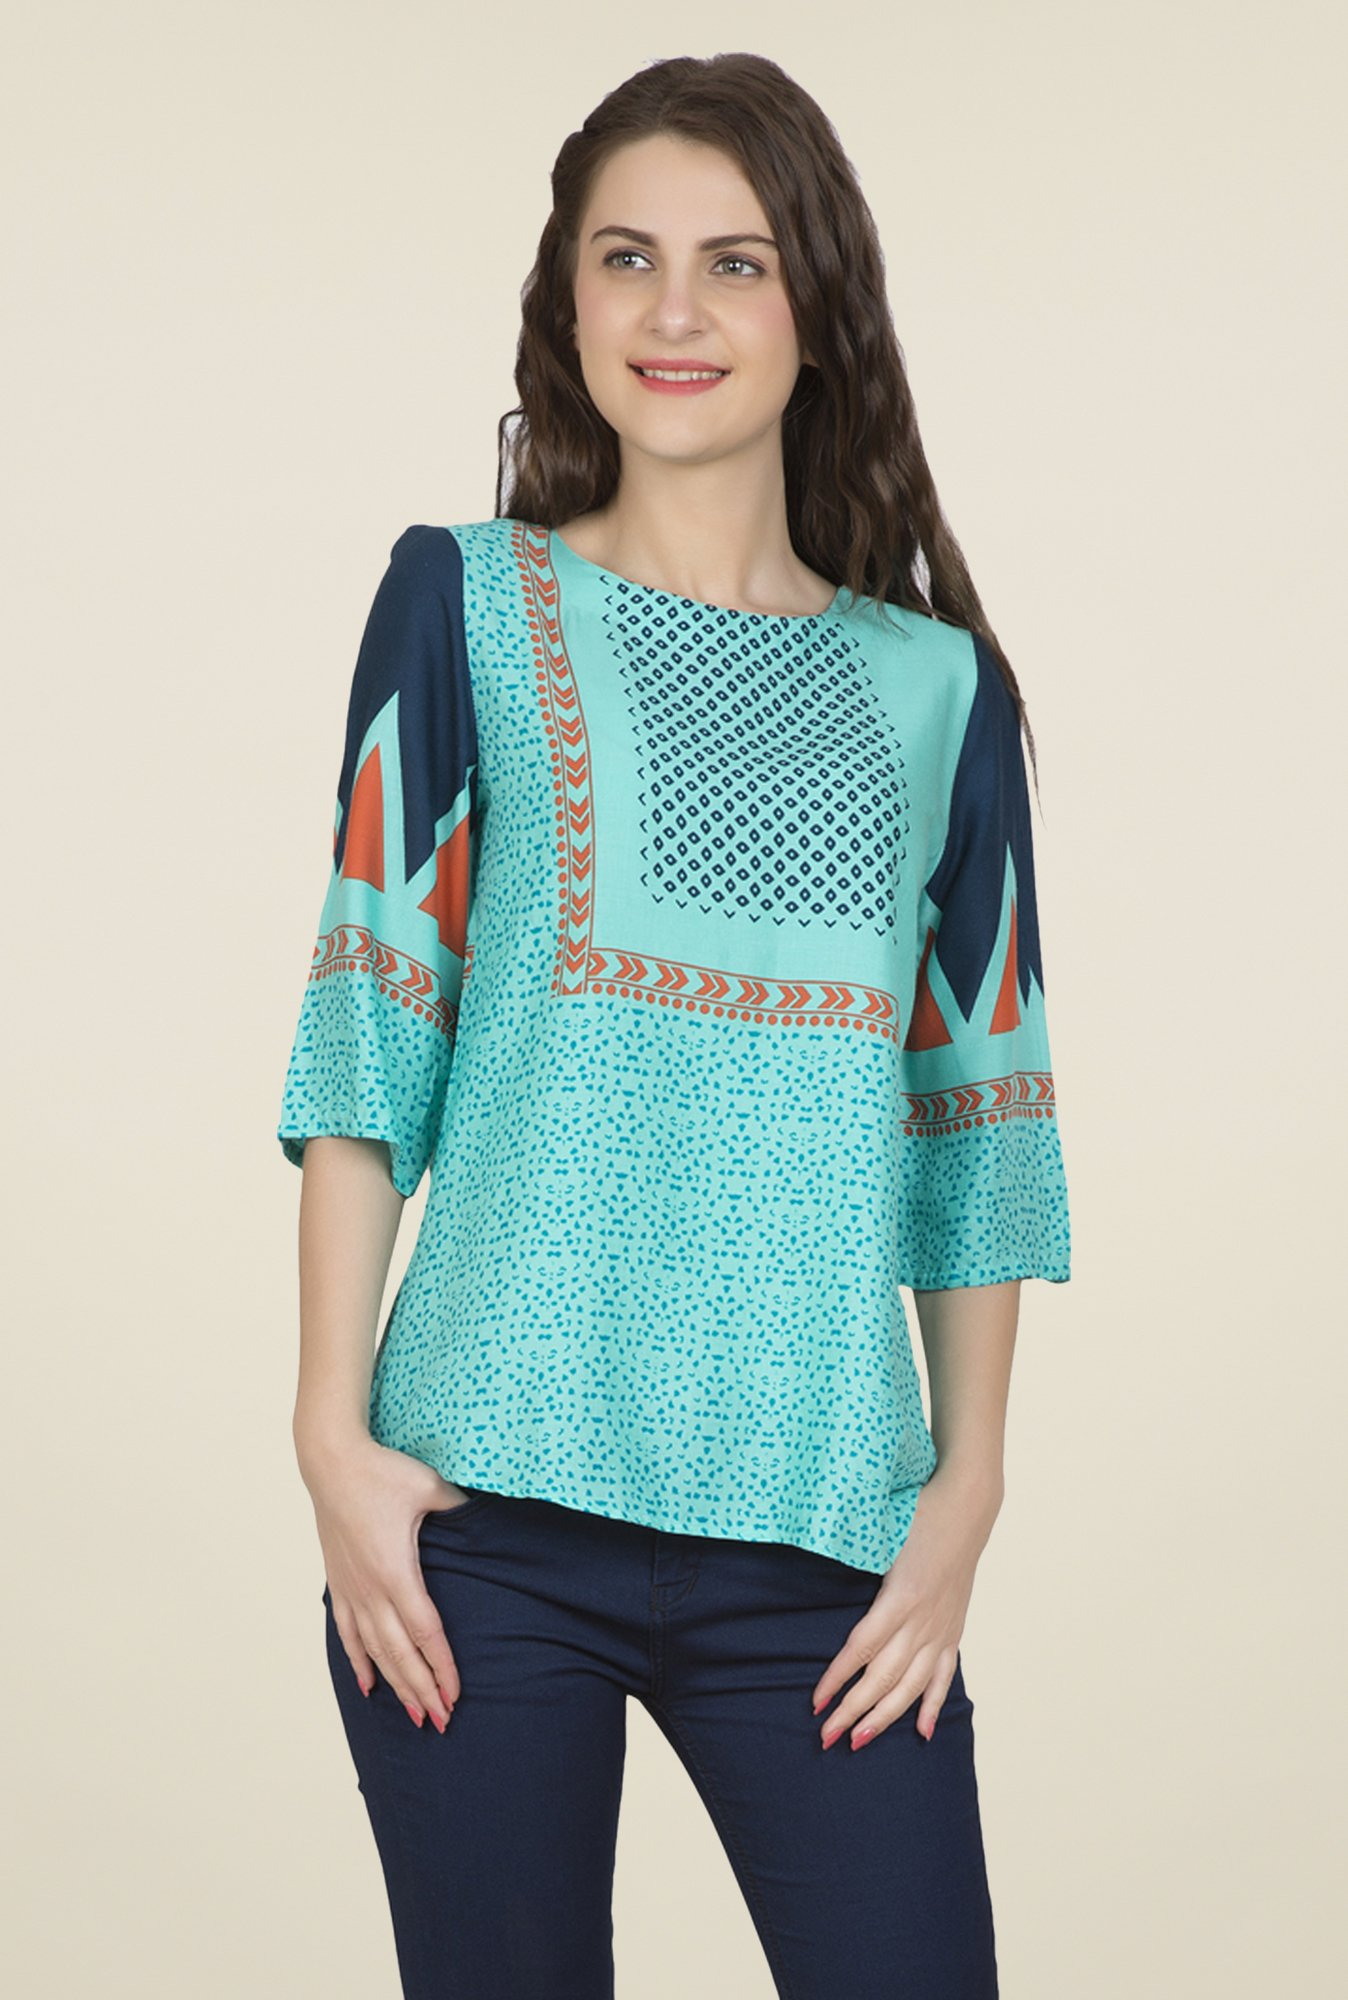 Desi Belle Turquoise Printed Top